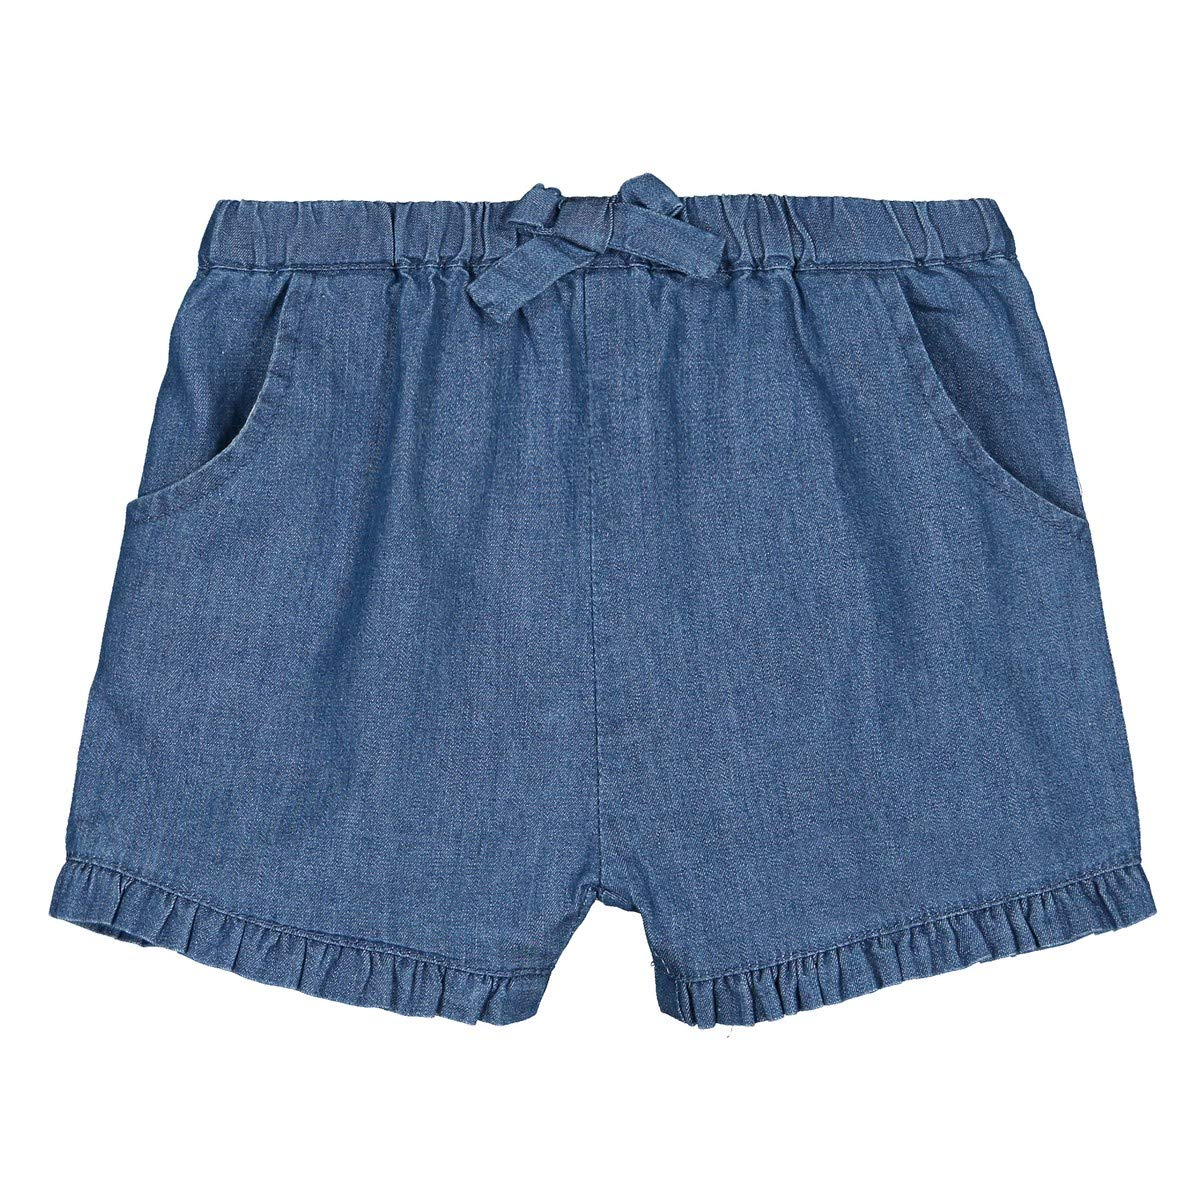 La Redoute Collections Big Girls Denim Ruffled Bloomer Shorts 1 Month-3 Years